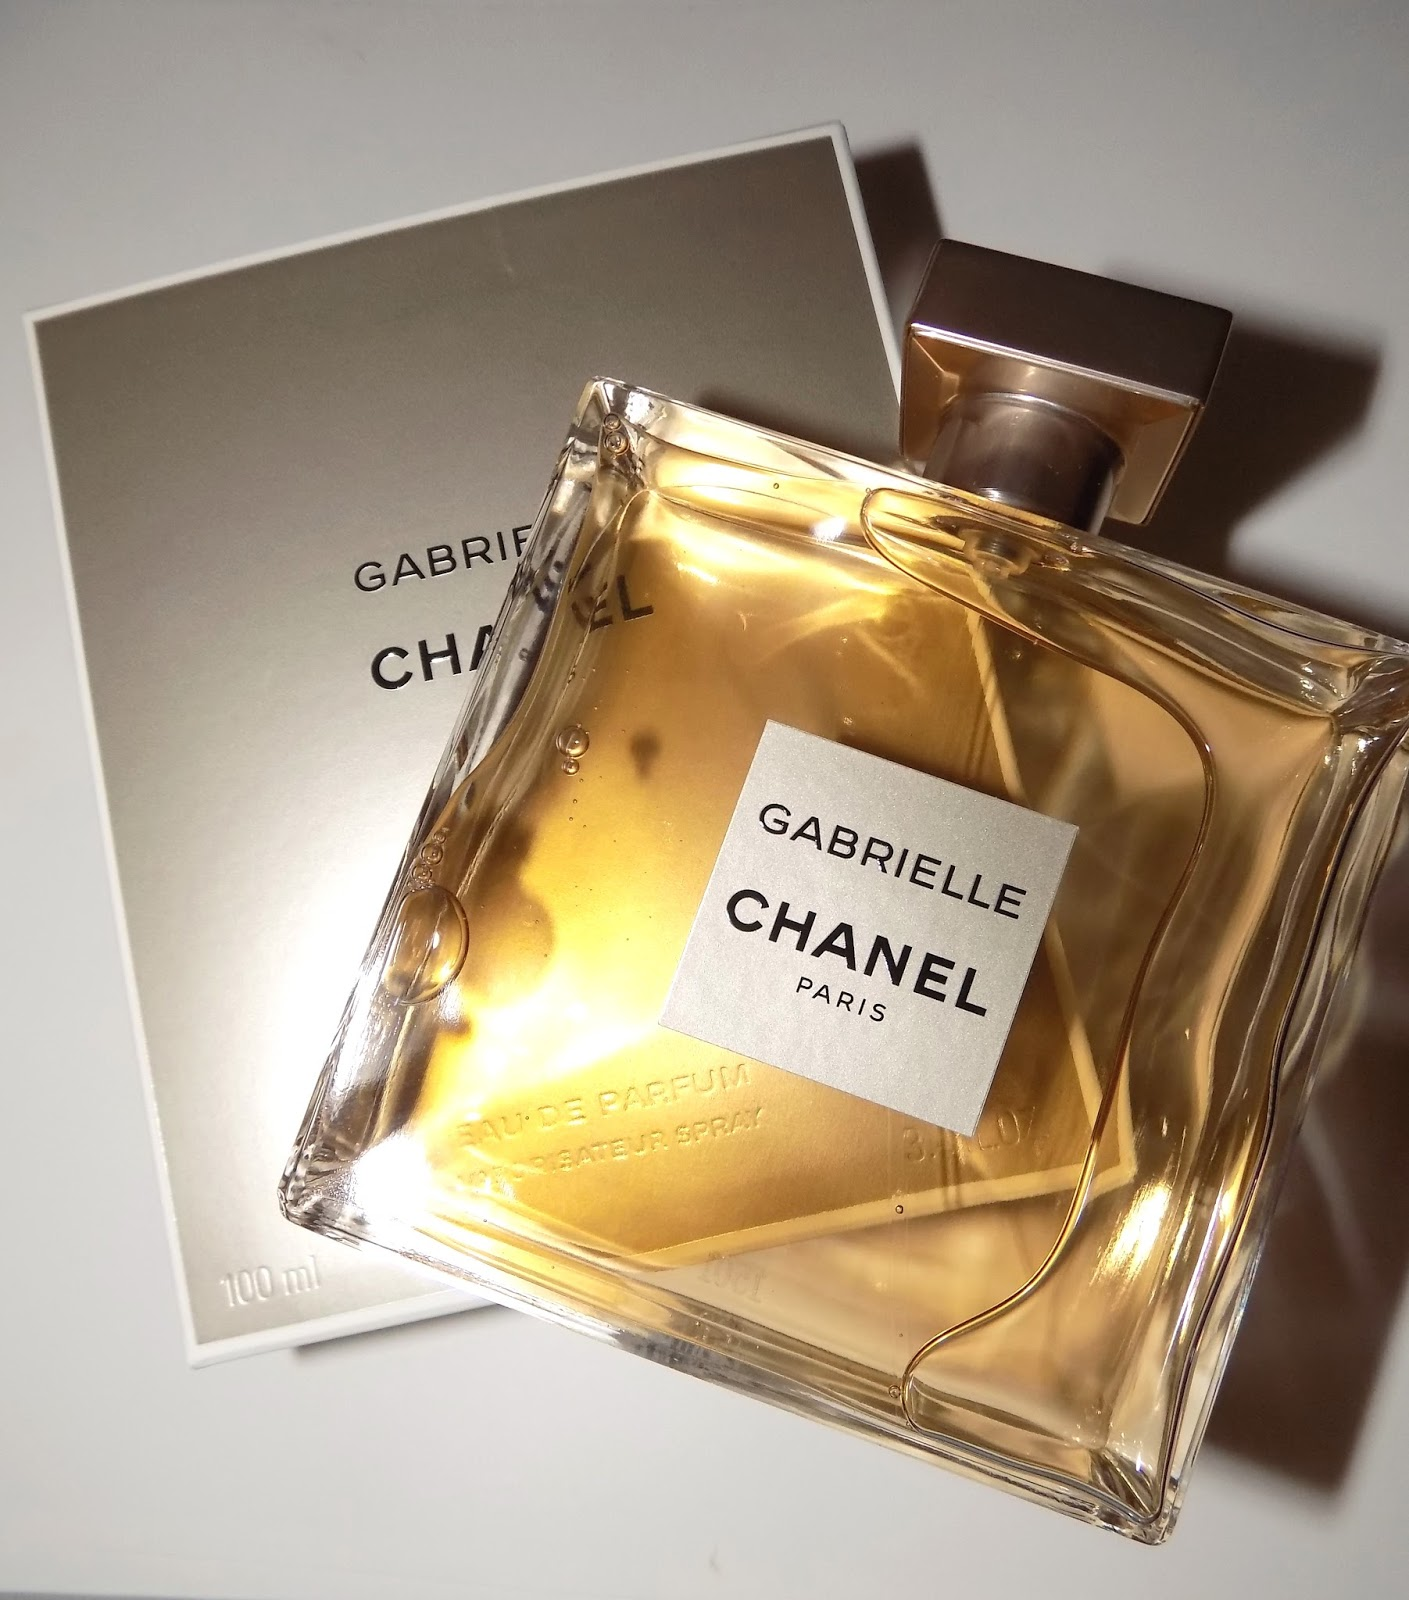 Chanel Gabrielle The Beauty Alchemist Gabrielle Chanel The Fragrance